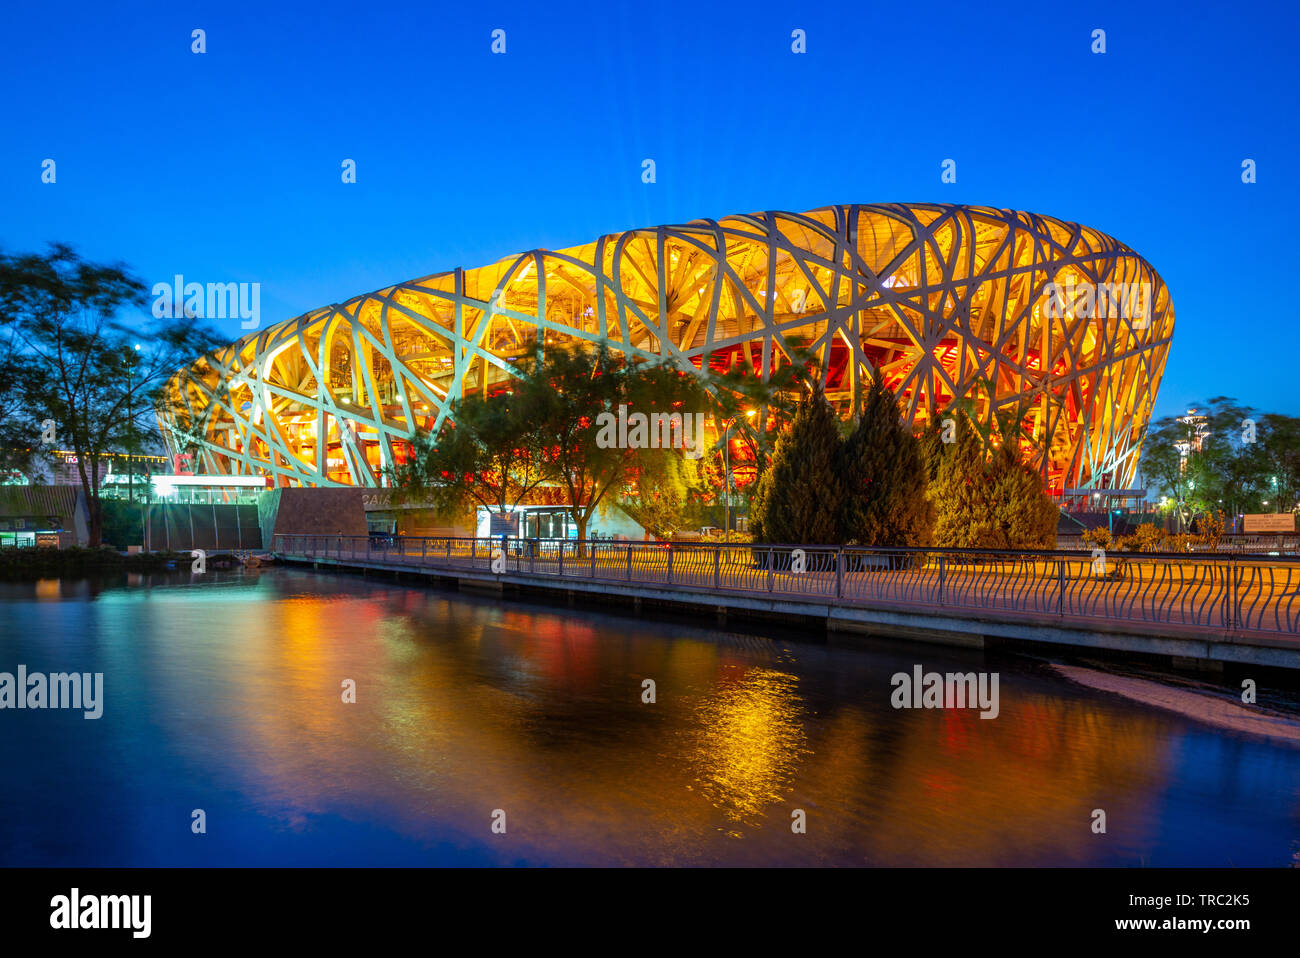 Beijing, China - May 6, 2019: Night view of Beijing National Stadium, also known as the Bird's Nest, designed for use throughout the 2008 Summer Olymp Stock Photo